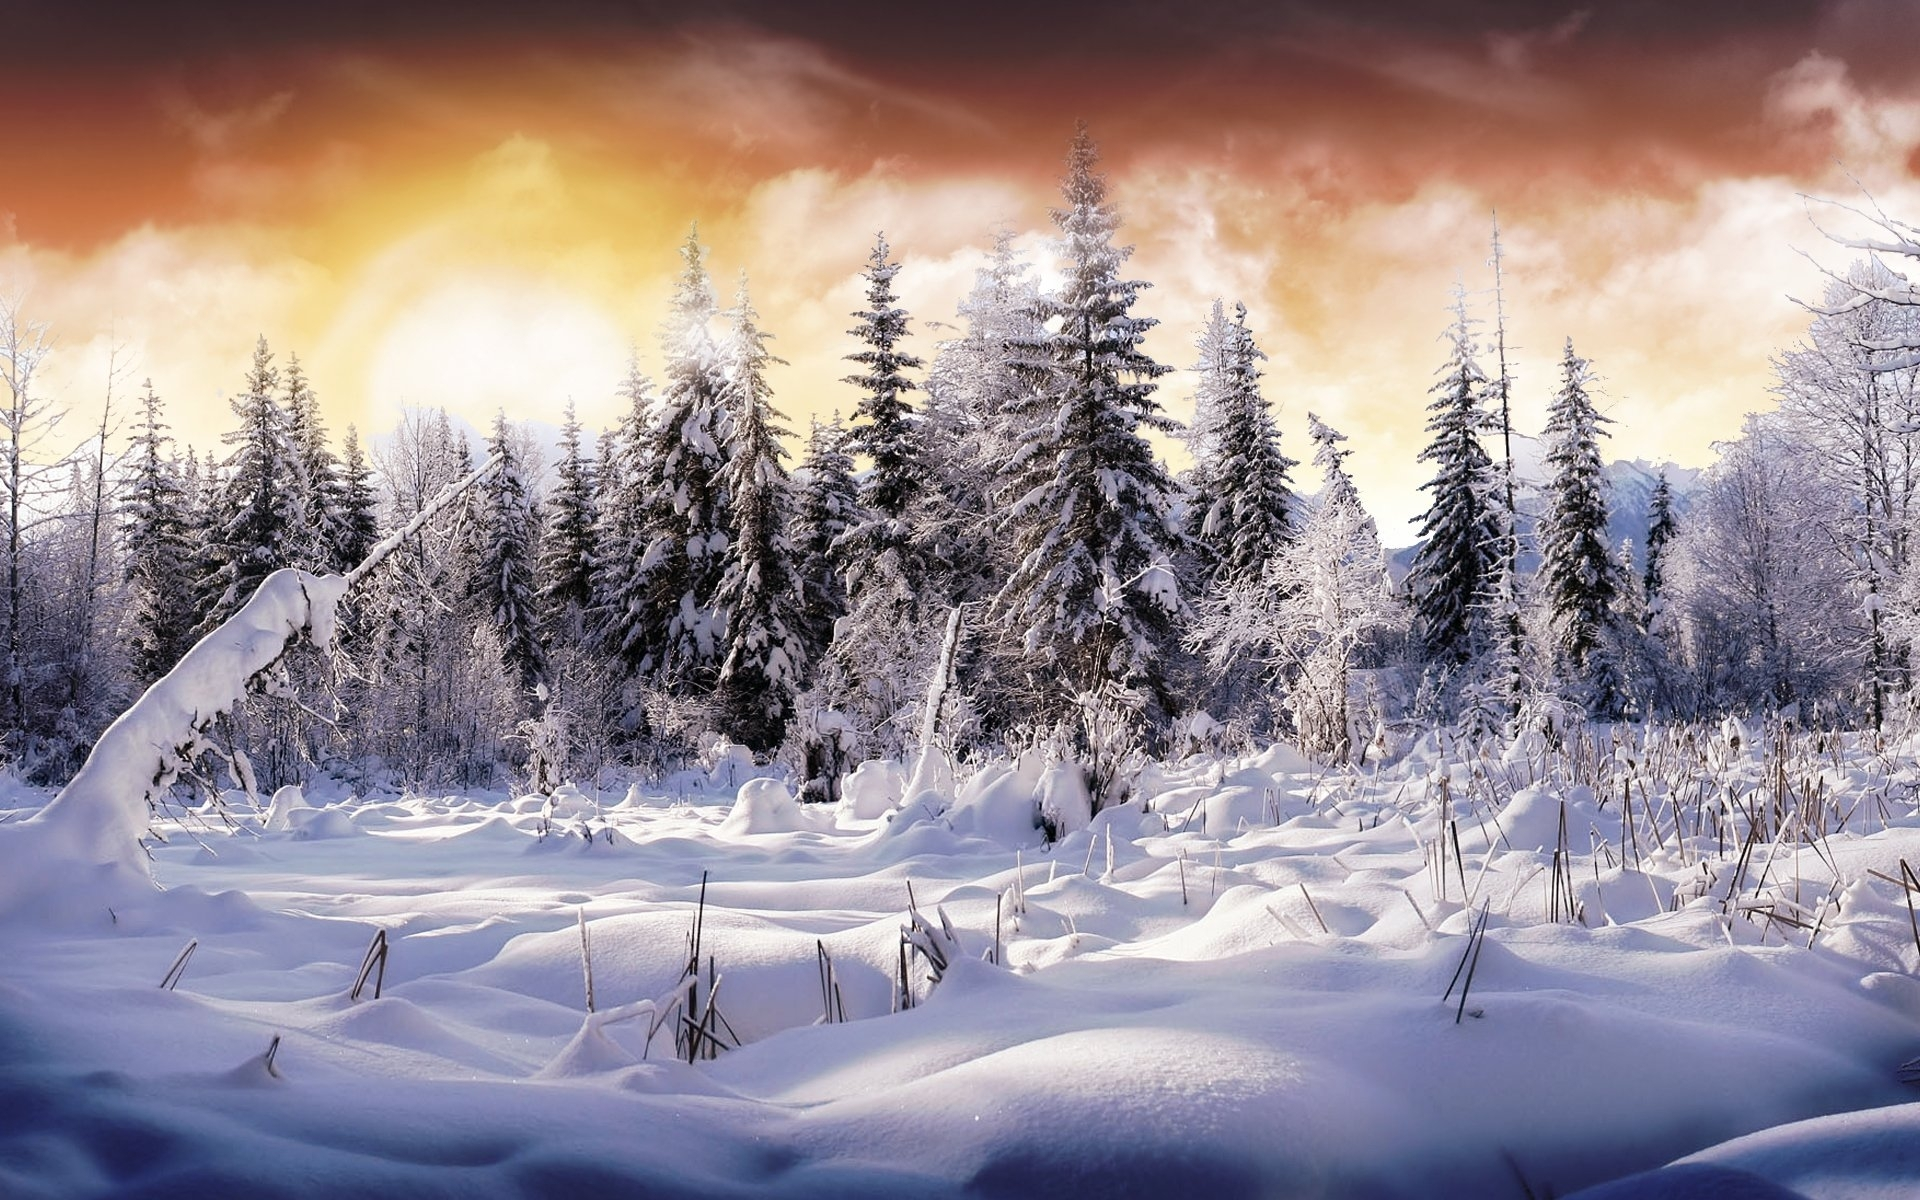 2603 winter hd wallpapers   background images - wallpaper abyss